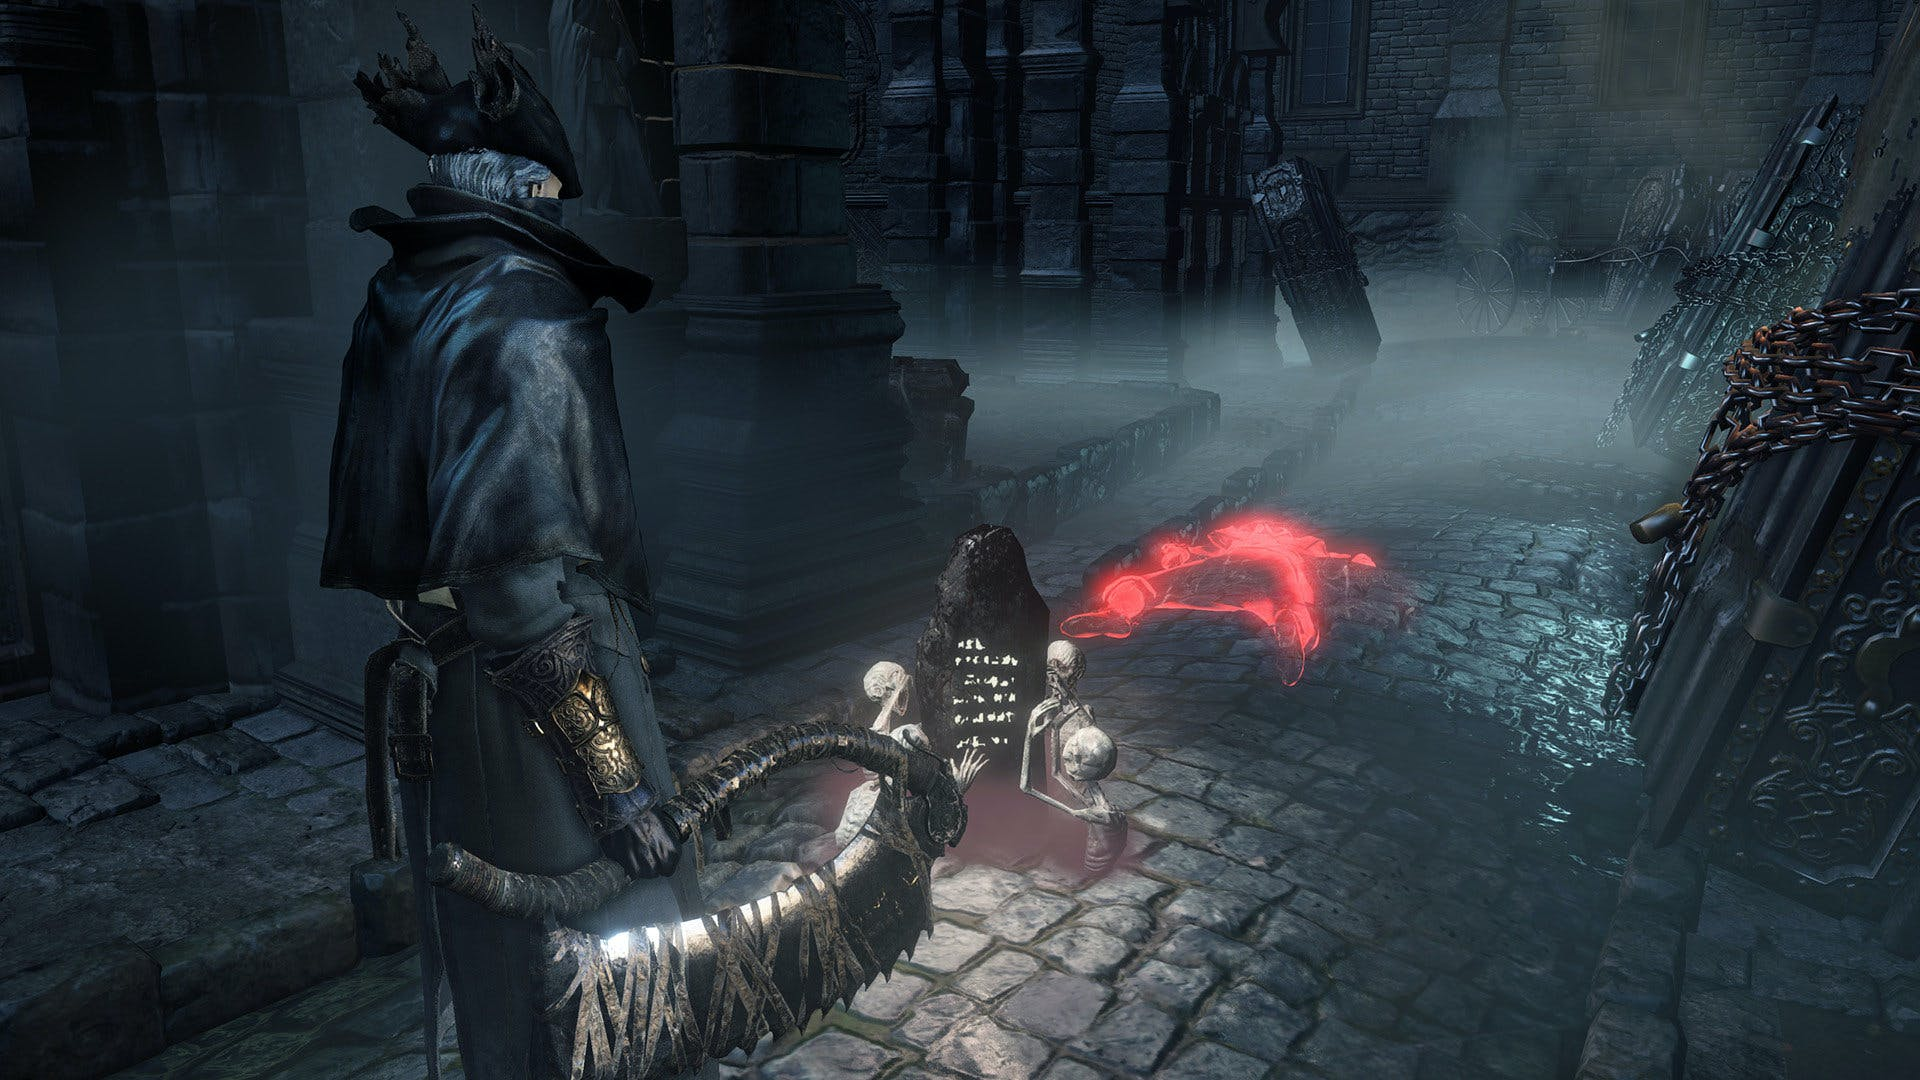 https://images.prismic.io/fanatical/be2d2be8706601be66decafe90acf8f246aa2f8f_bloodborne-online-screen-05-ps4-us-06mar15.jpg?auto=compress,format